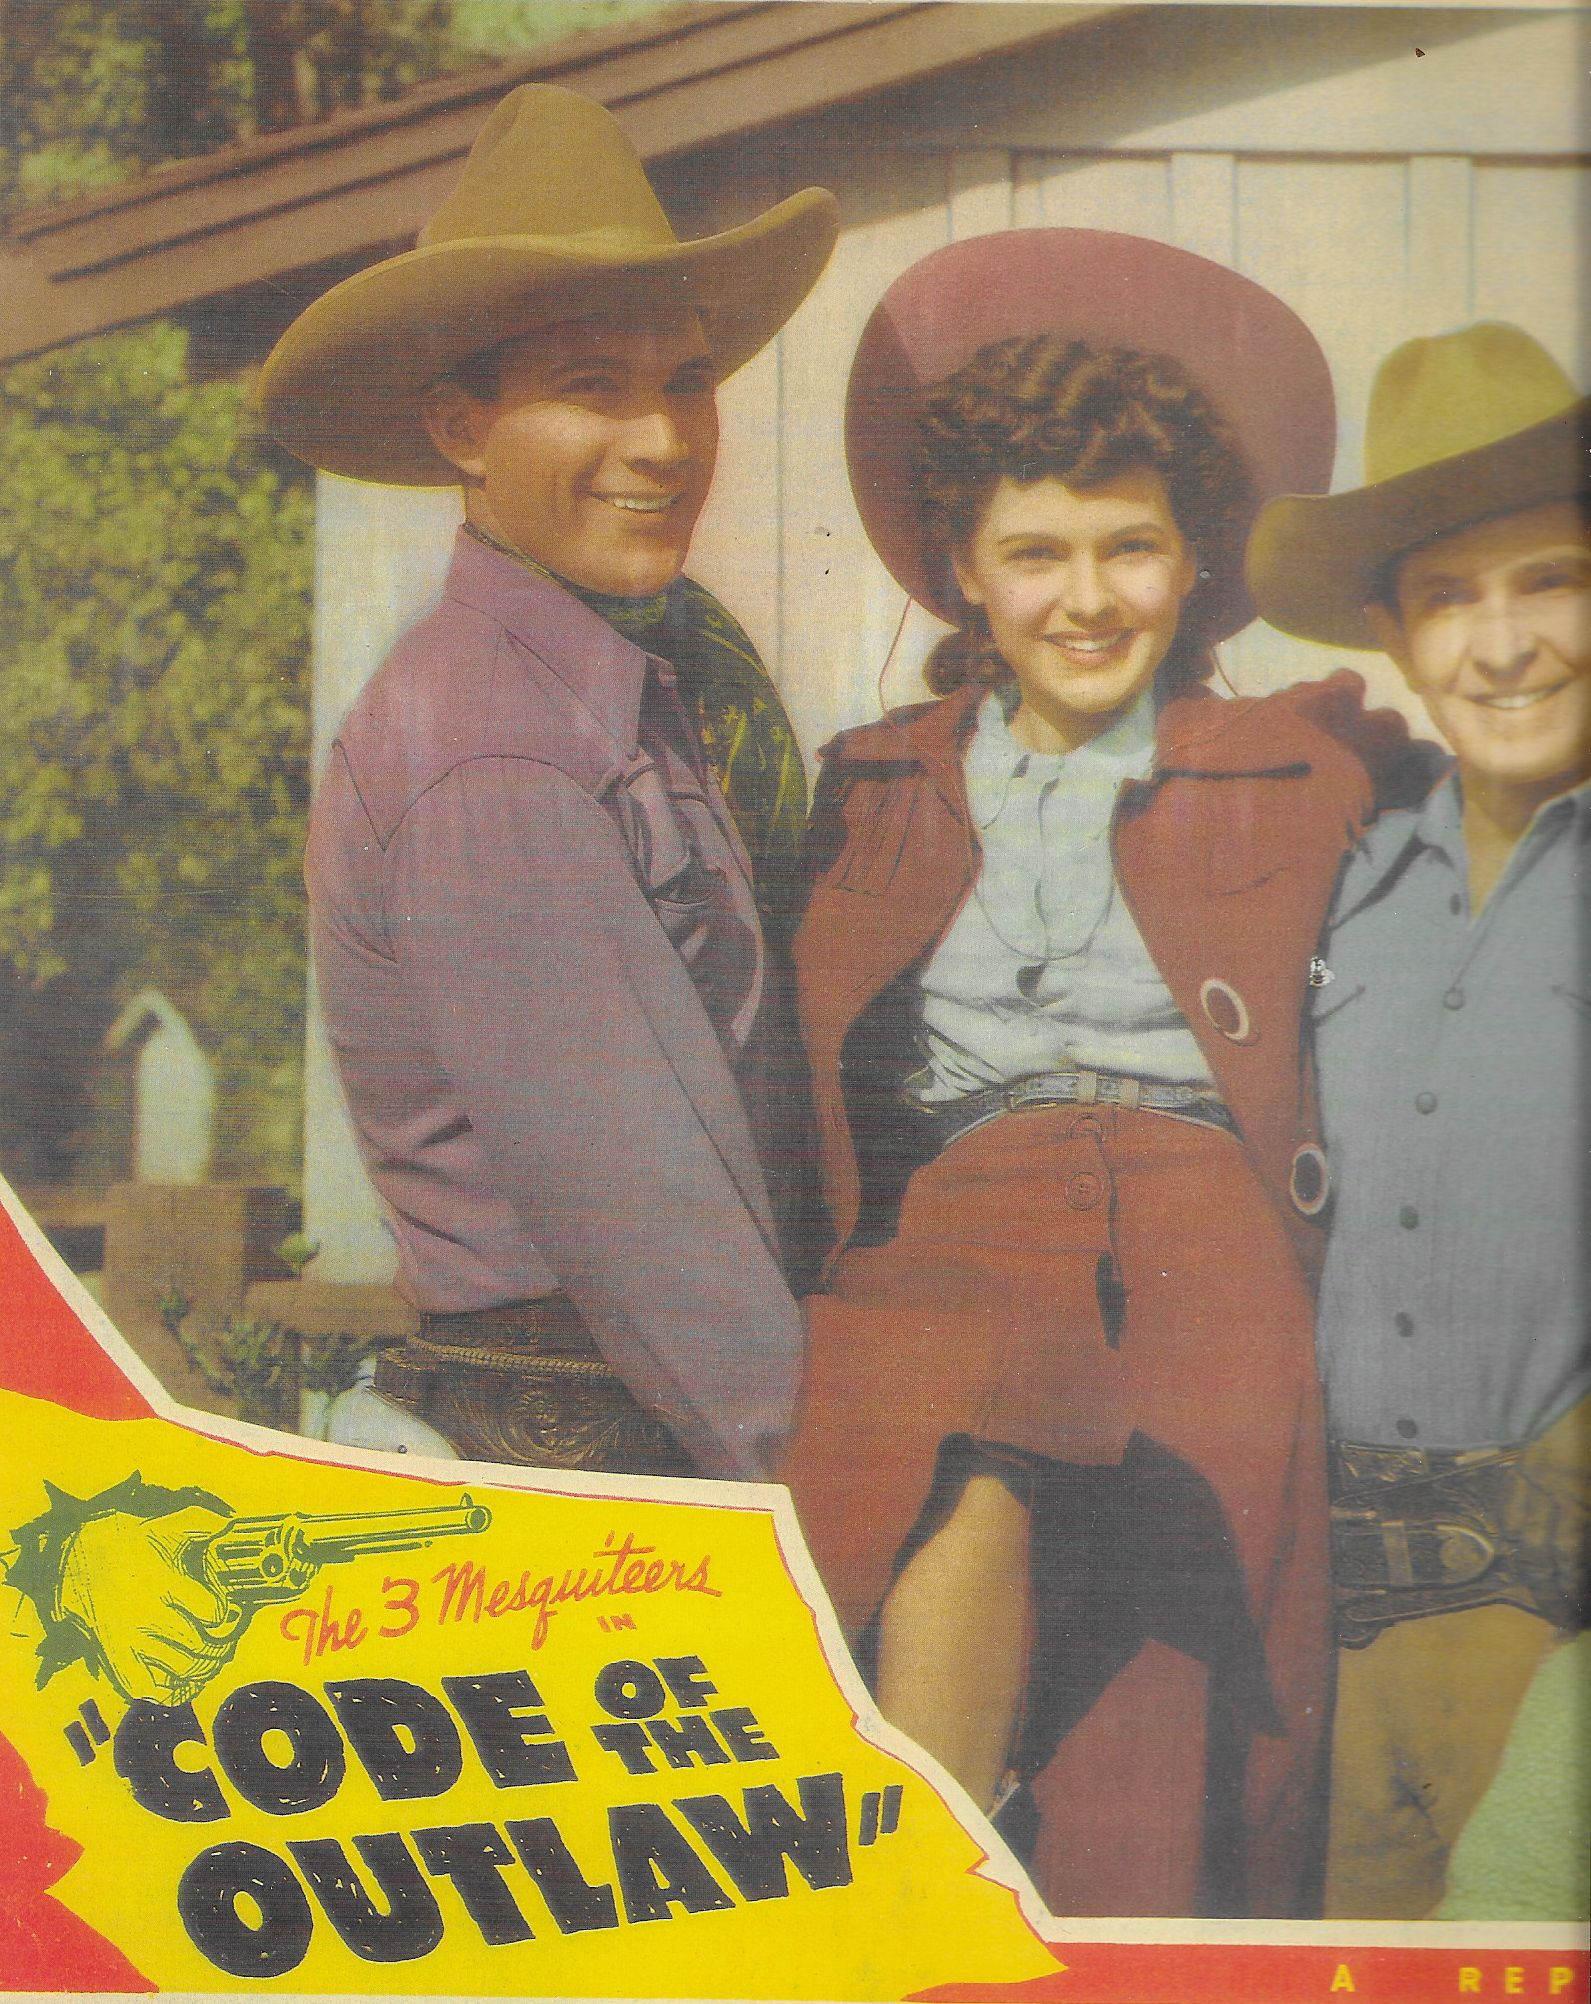 Linda Leighton, Bob Steele, and Tom Tyler in Code of the Outlaw (1942)